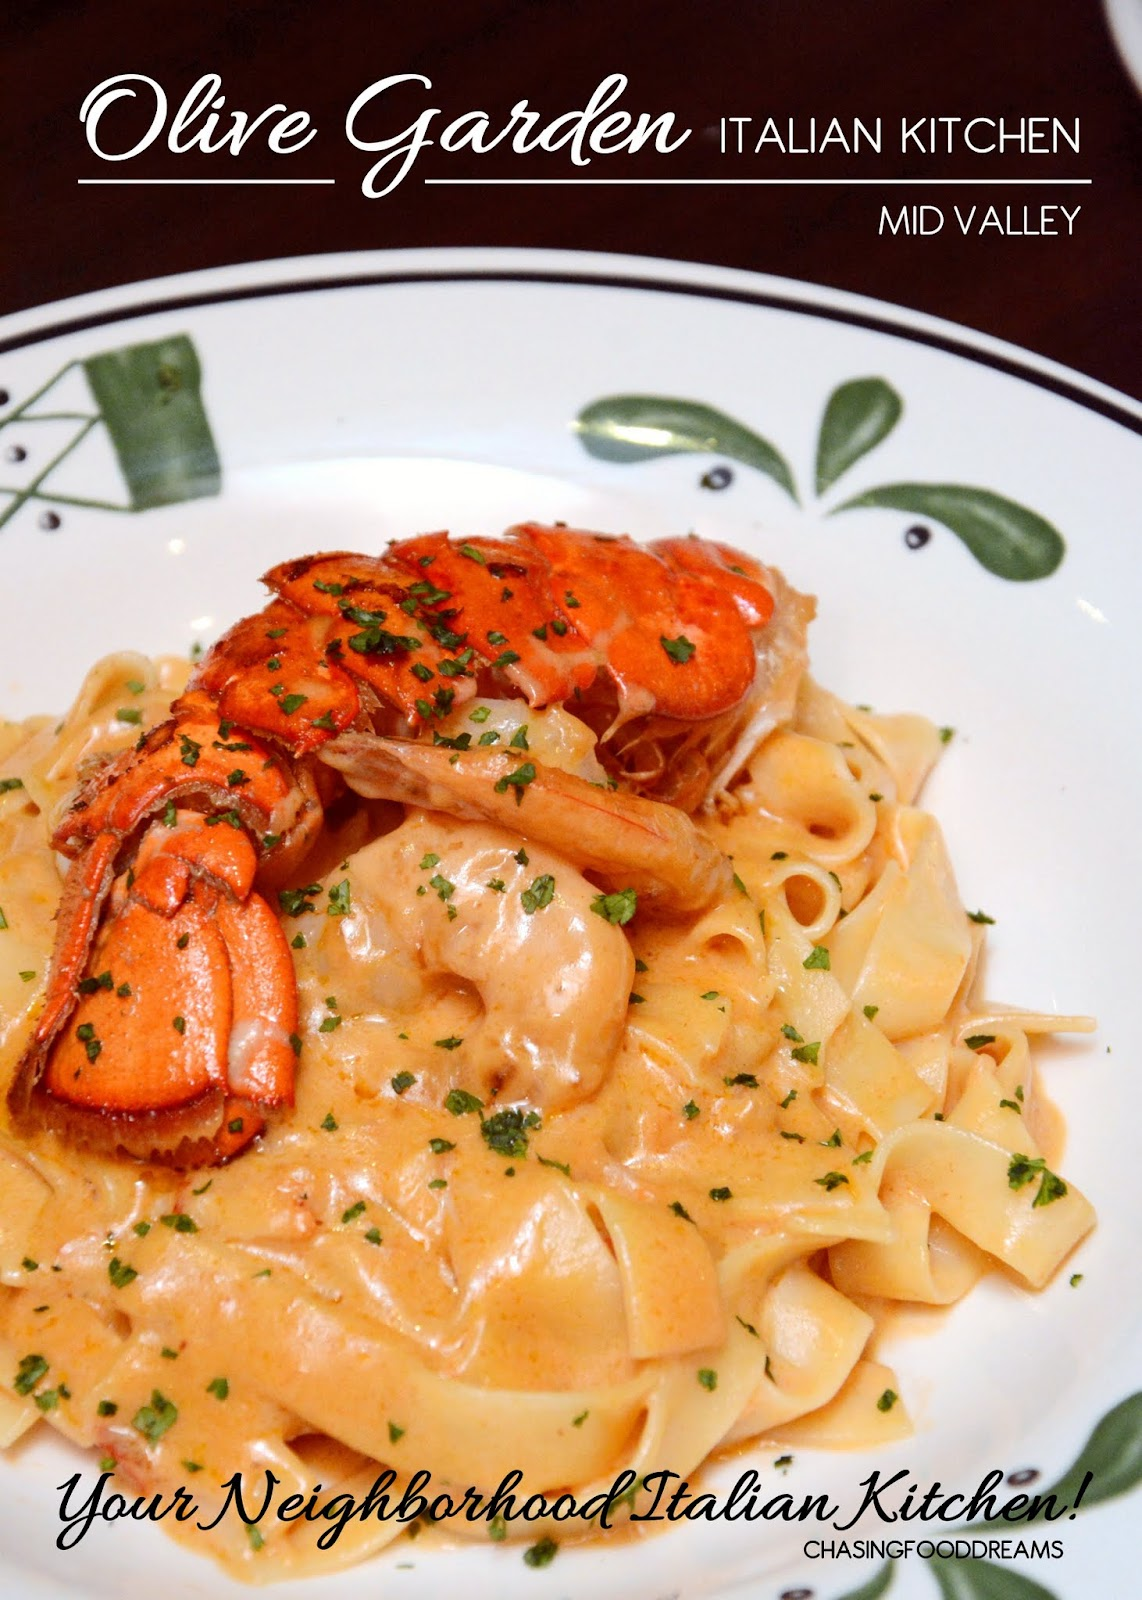 Chasing Food Dreams Olive Garden Italian Kitchen Mid Valley